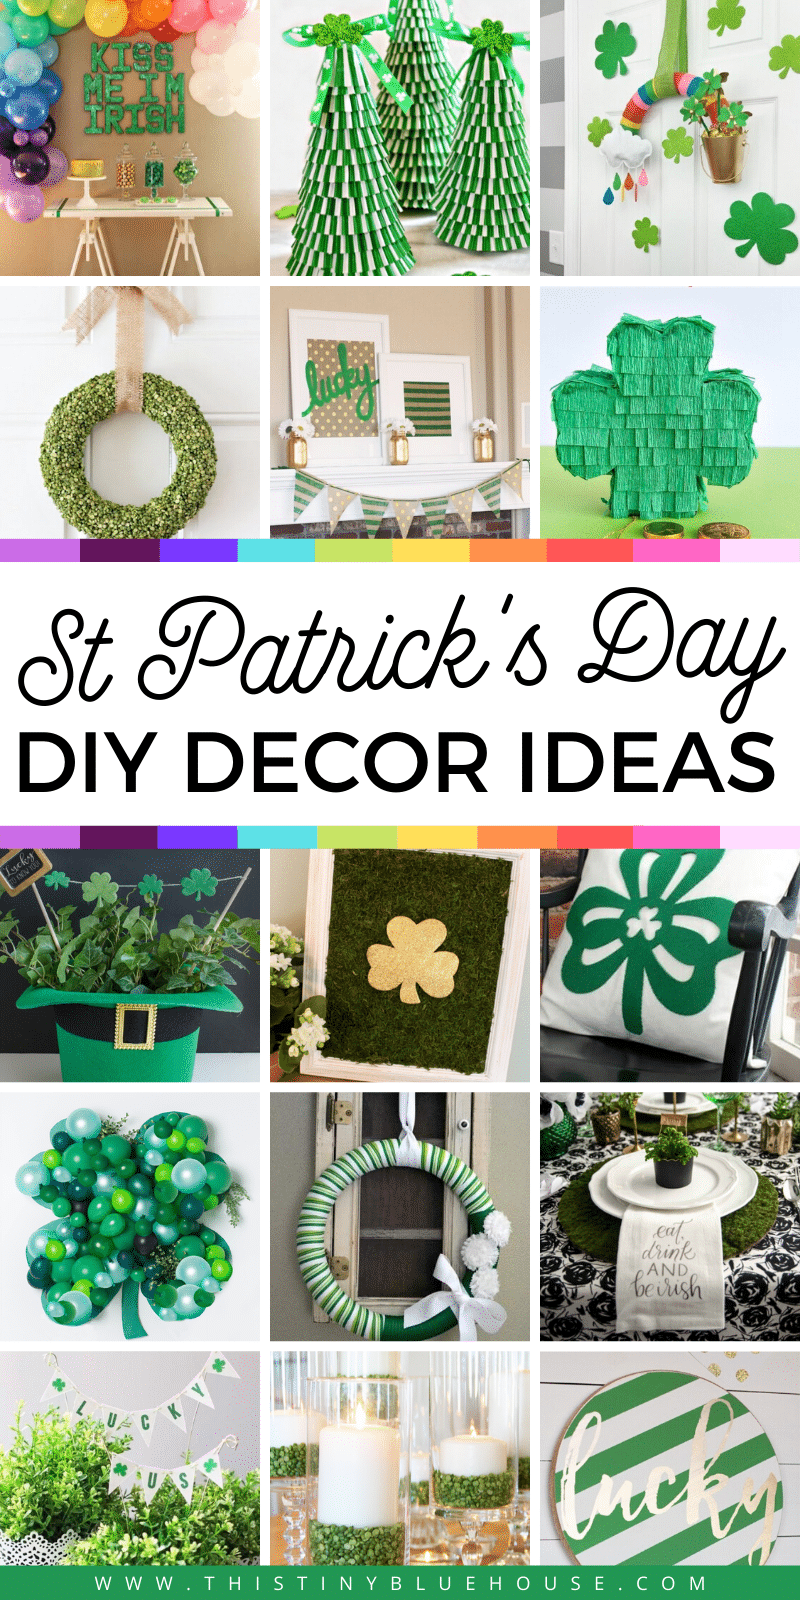 Celebrate St Patrick's day with these fun and gorgeous DIY Decor Ideas. These fun and creative DIY Decor Ideas For St. Paddy's are a great way to make St. Patrick's day extra festive. #DIYDecorStPatricksDay #StPatricksDayDecor #StPatricksDayDIYDecorIdeas #StPaddysDayDecor #StPaddysDayDIYDecorIdeas